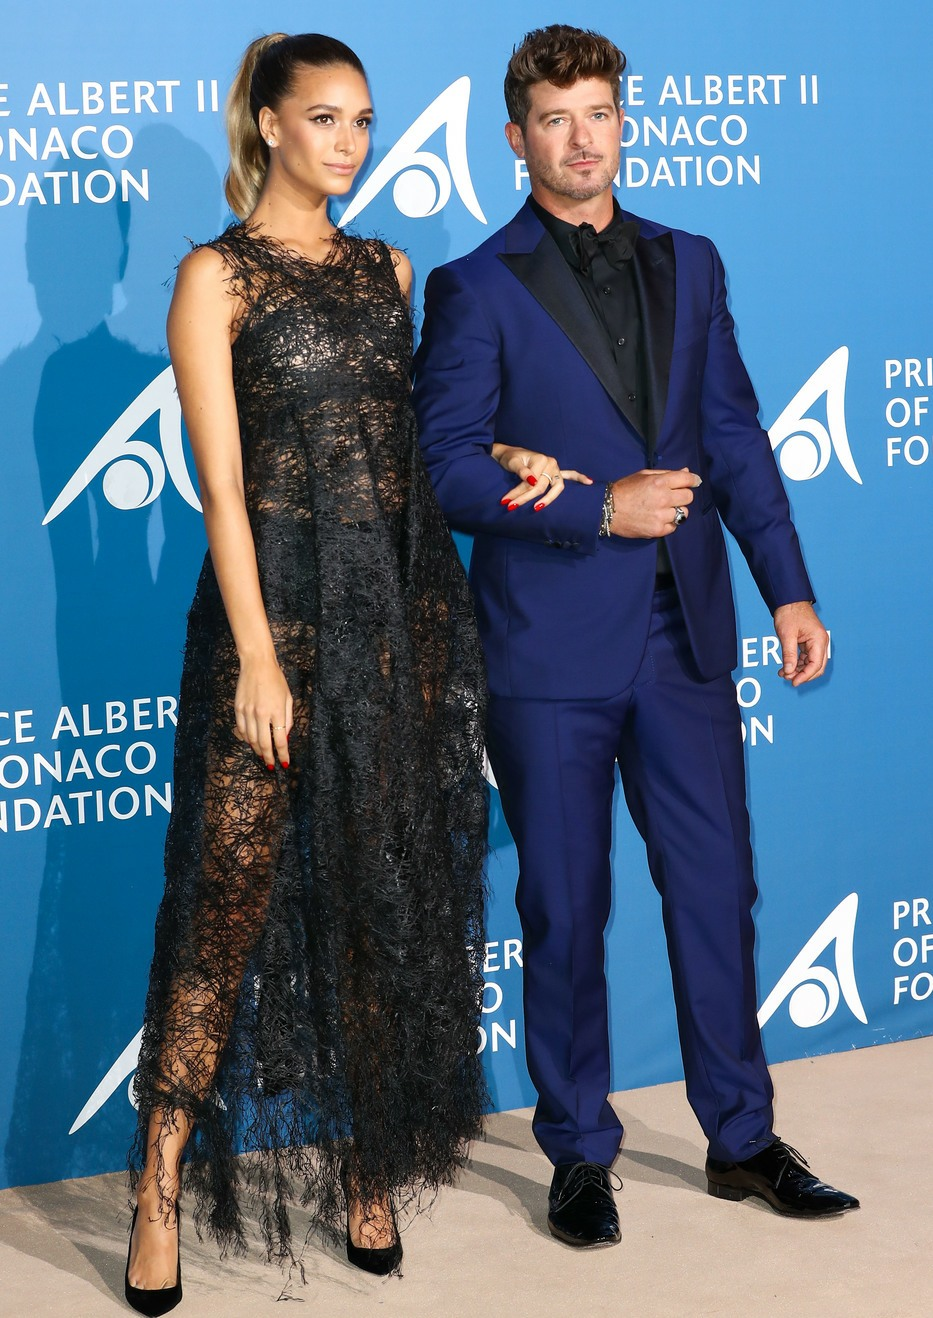 Robin Thicke and April Love Geary attend the Inaugural 'Monte-Carlo Gala For The Global Ocean' Honoring Leonardo DiCaprio at The Monaco Garnier Opera on September 28, 2017 in Monaco, Monaco.USA, OZ, NZ, SOUTH AFRICA, JAPAN AND CHINA ONLY Photograph: © CRY